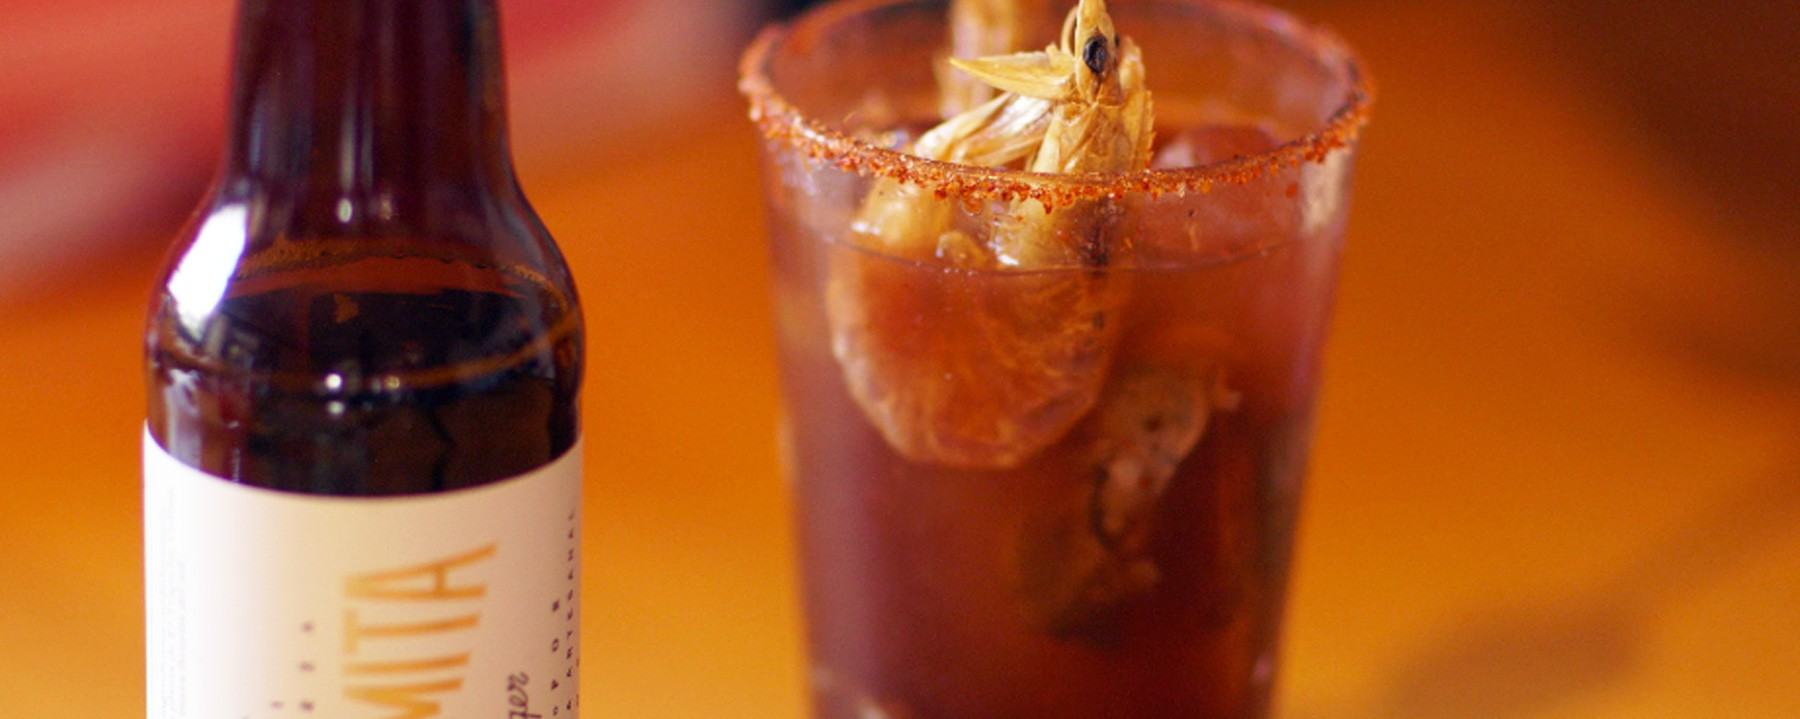 How-To: Make Seafood Beer n' Clamato with Campo Baja